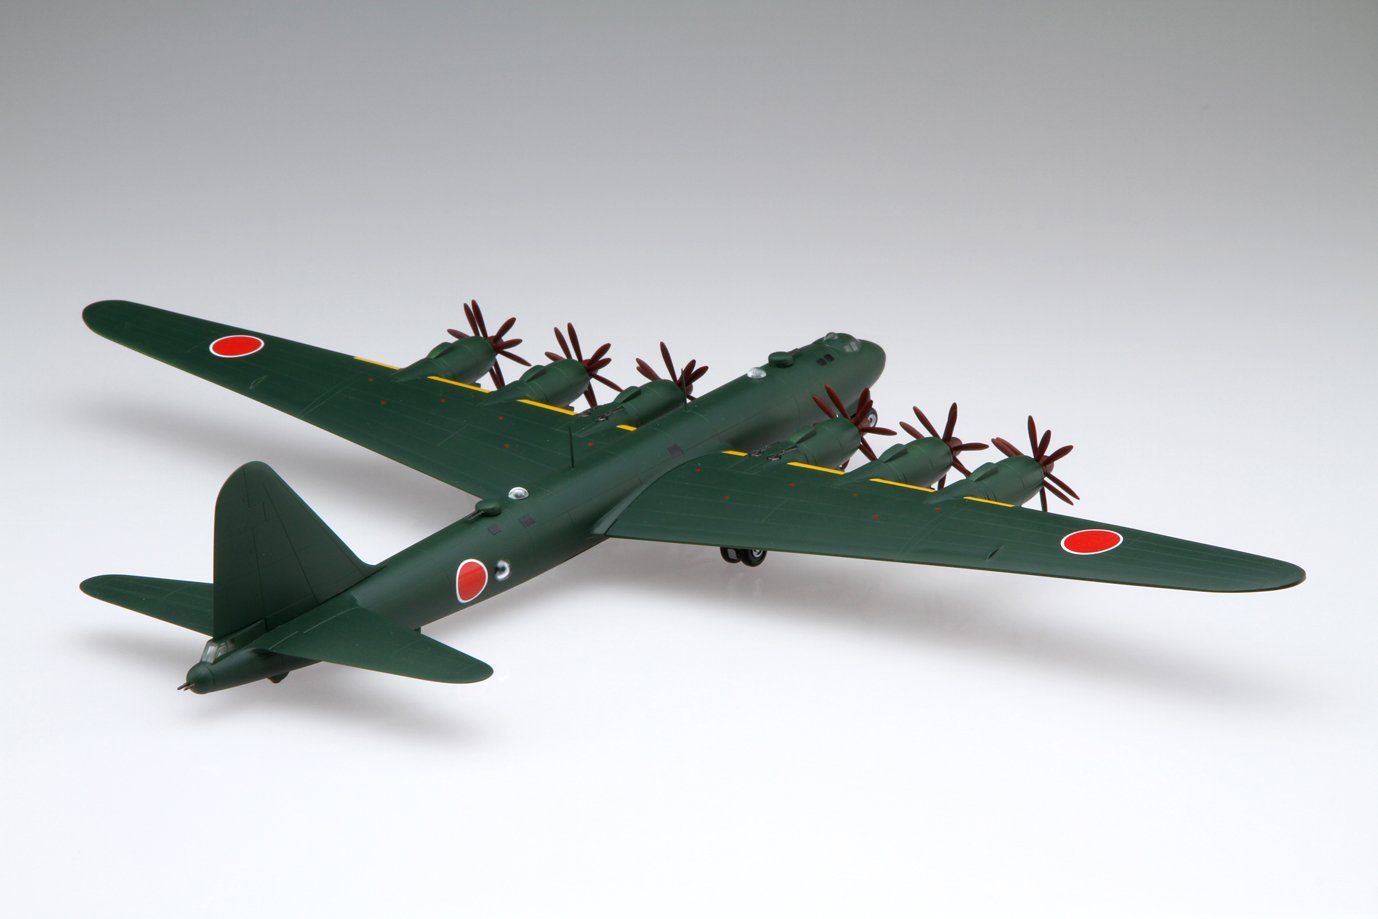 build model airplanes kits with Fujimi 1 144 144252 Ijn Heavy Bomber Fugaku Plastic 222098347445 on 85 5512 further Article likewise Model Airplane Harrier Gr 7 From Revell Kit furthermore Kitdata in addition MIA 20Autogyros.